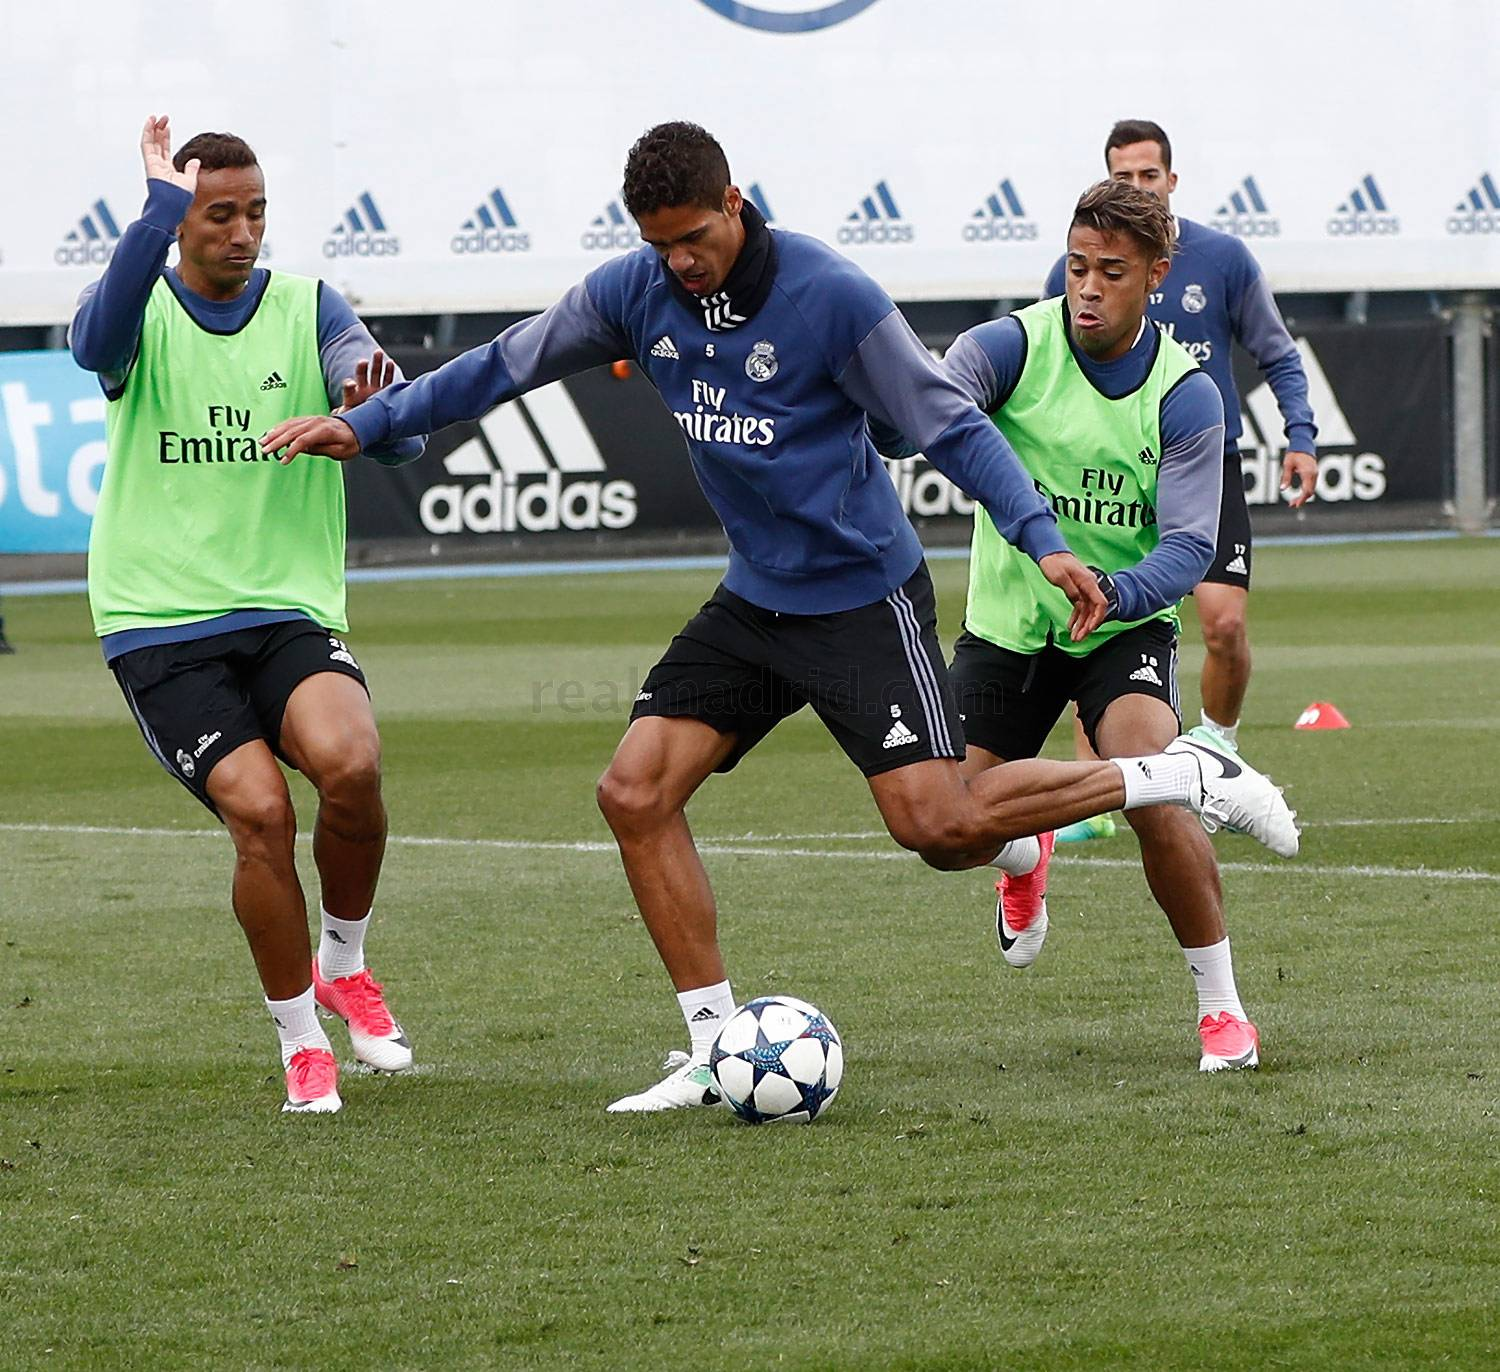 Real Madrid - Entrenamiento del Real Madrid - 30-04-2017